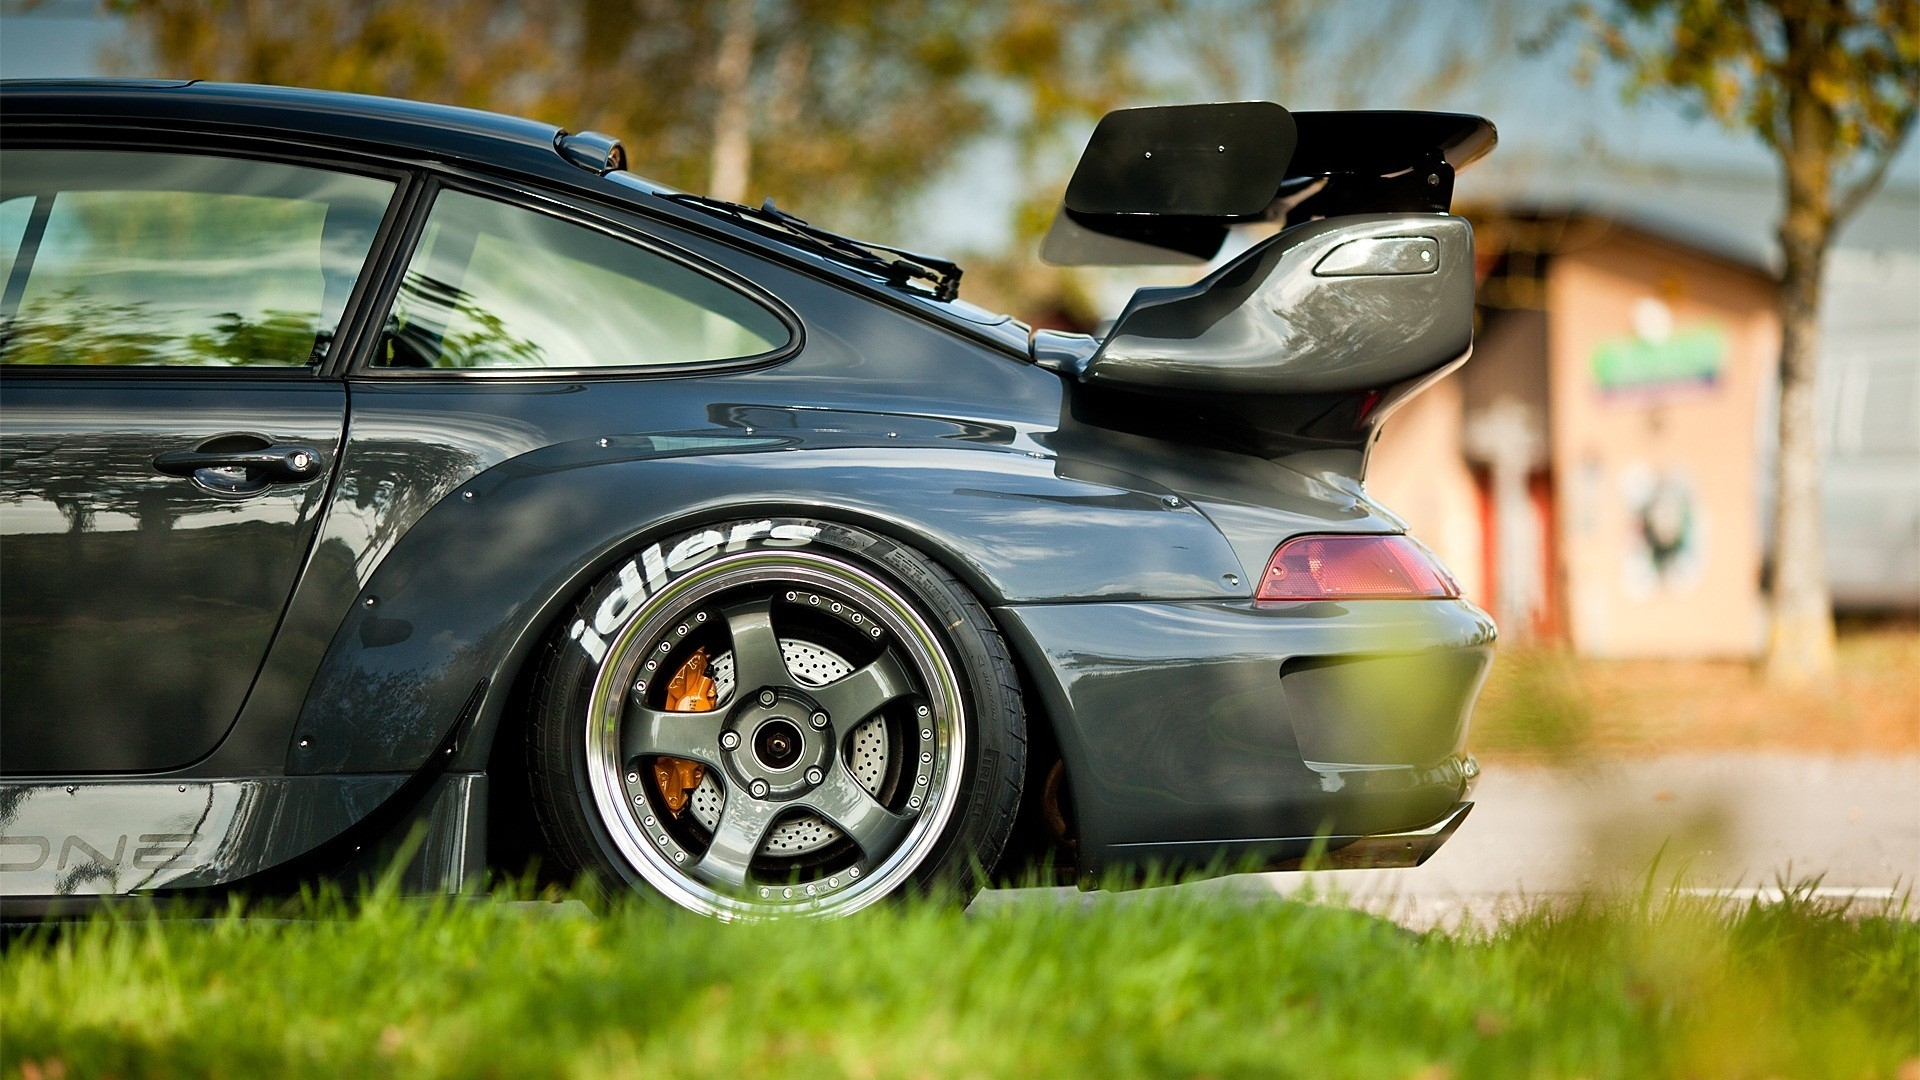 Rwb 4k Wallpaper: Porsche Cars Tuning Porsche 911 Rwb 1920 1080 Wallpaper